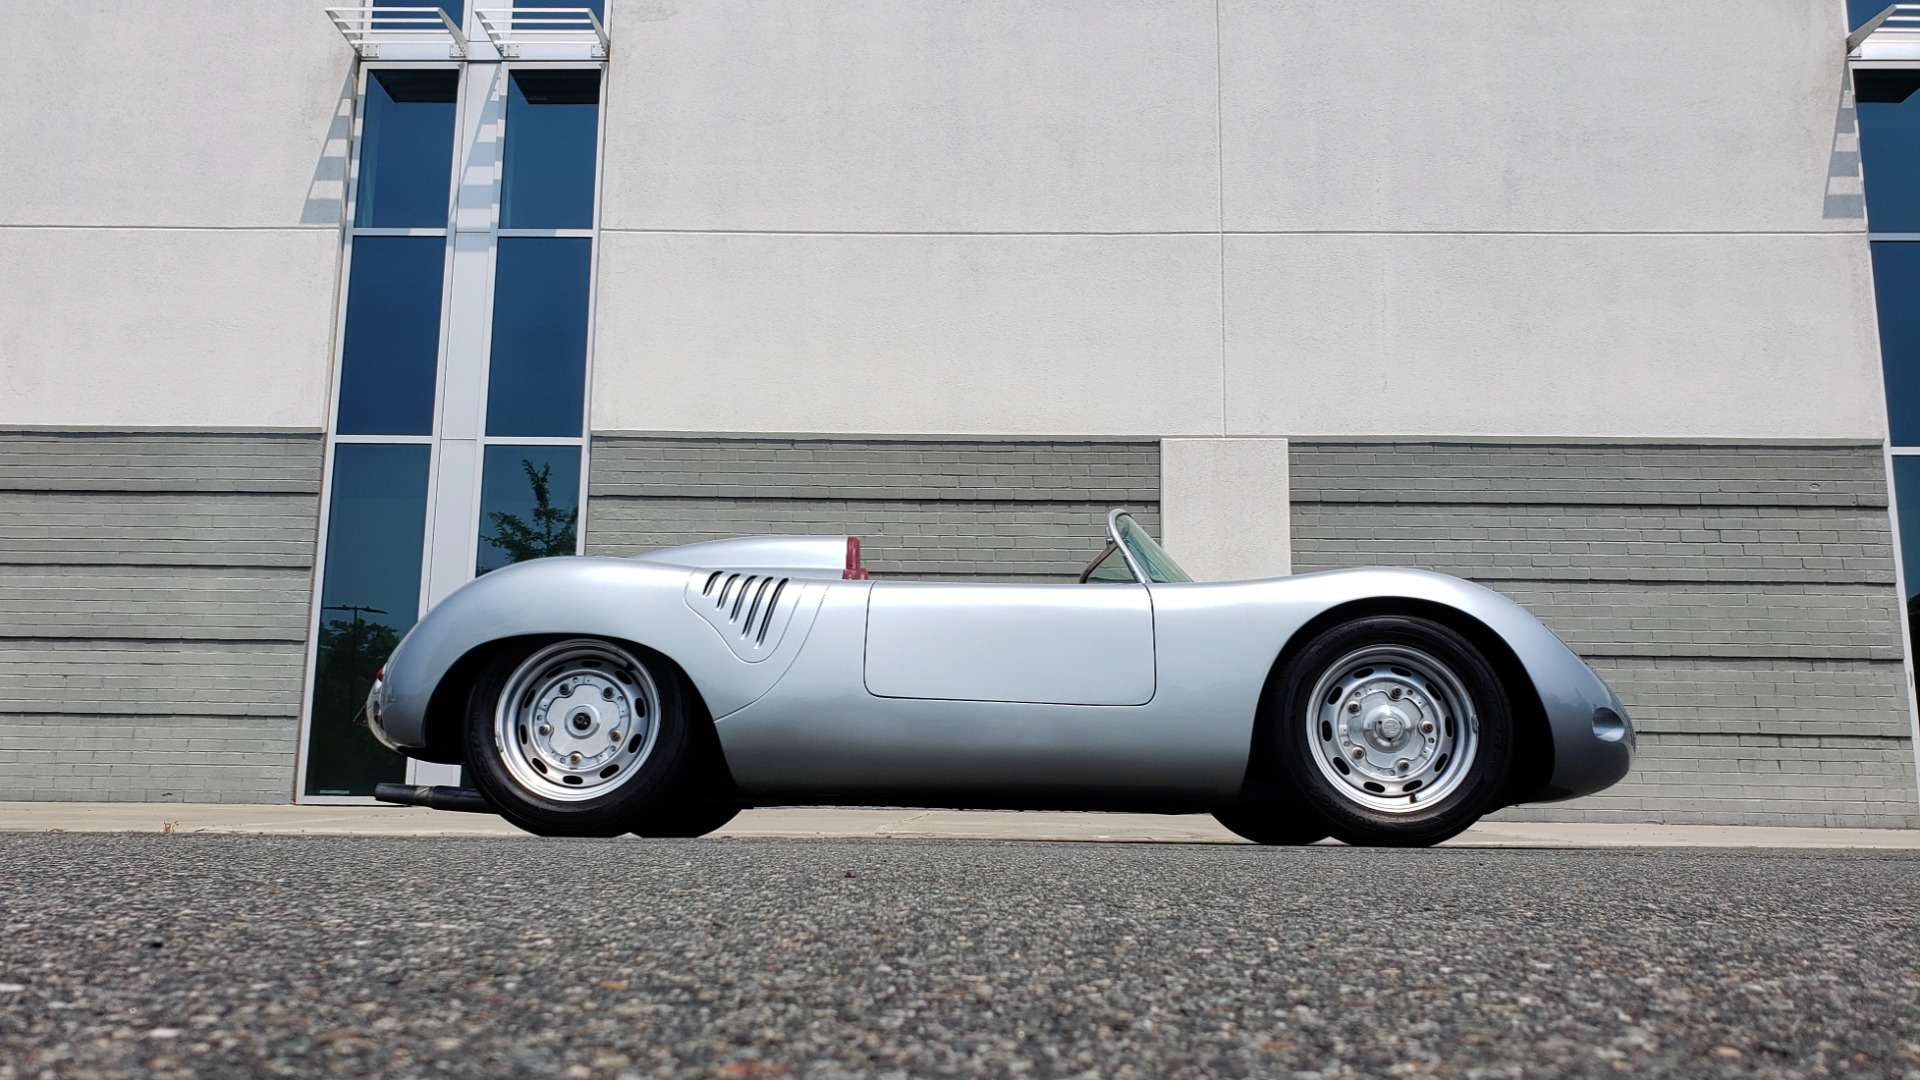 Used 1959 Porsche 718 RSK SPYDER REPLICA / 2275CC W/44MM WEBER (160HP) / 4-SPD MANUAL for sale $39,999 at Formula Imports in Charlotte NC 28227 7